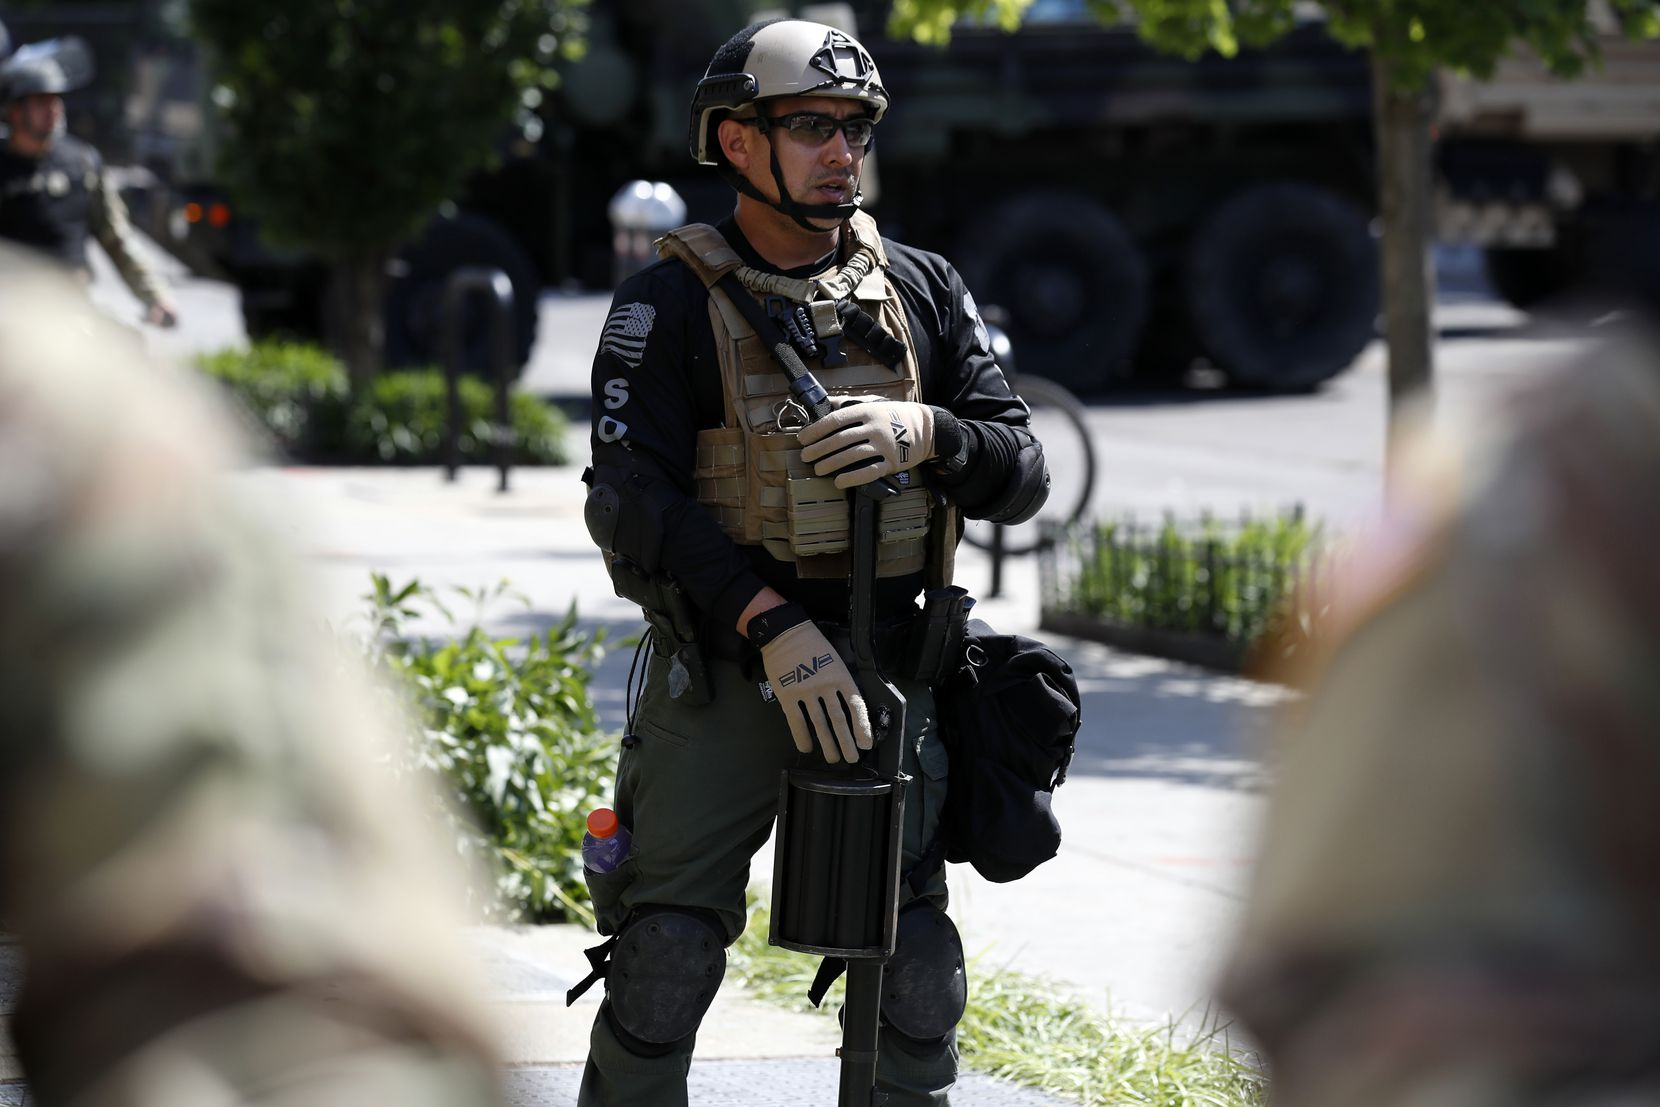 An officer from the Bureau of Prisons special operations response team carries a less-than-lethal weapon as demonstrators gather to protest the death of George Floyd on Wednesday, June 3, 2020, near the White House. Floyd died after being restrained by Minneapolis police officers.